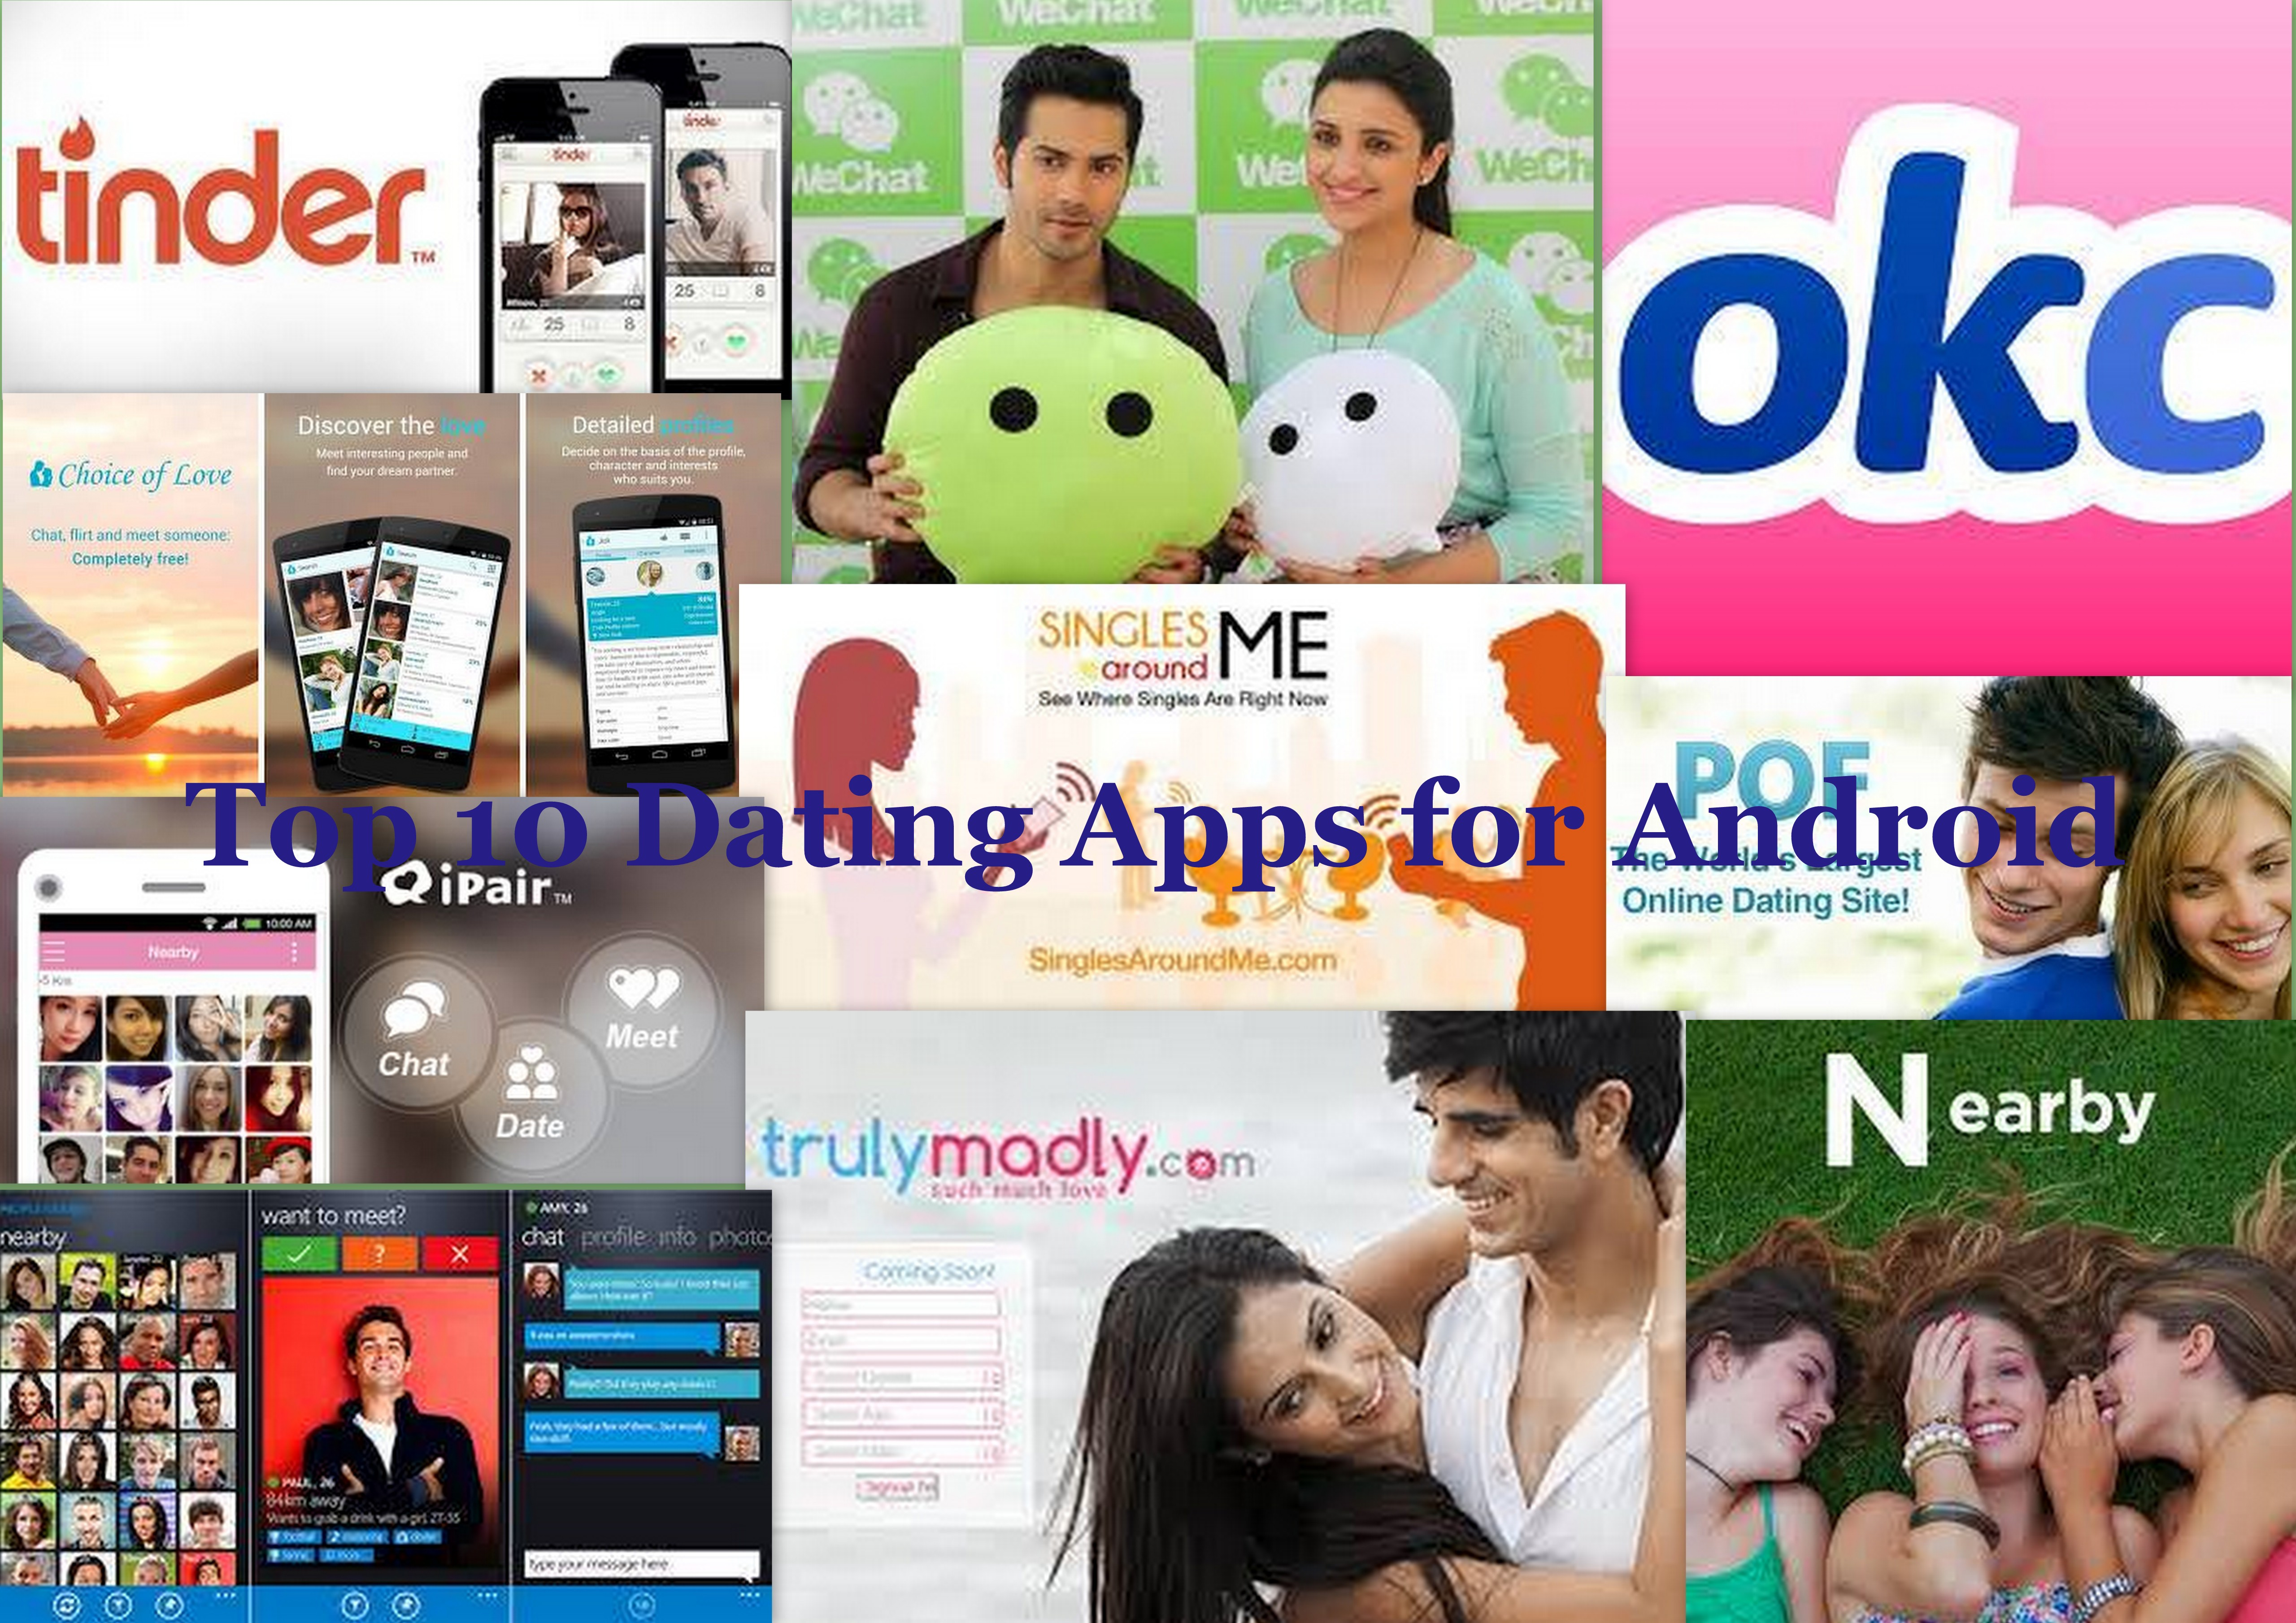 Top 10 Dating Apps for Android